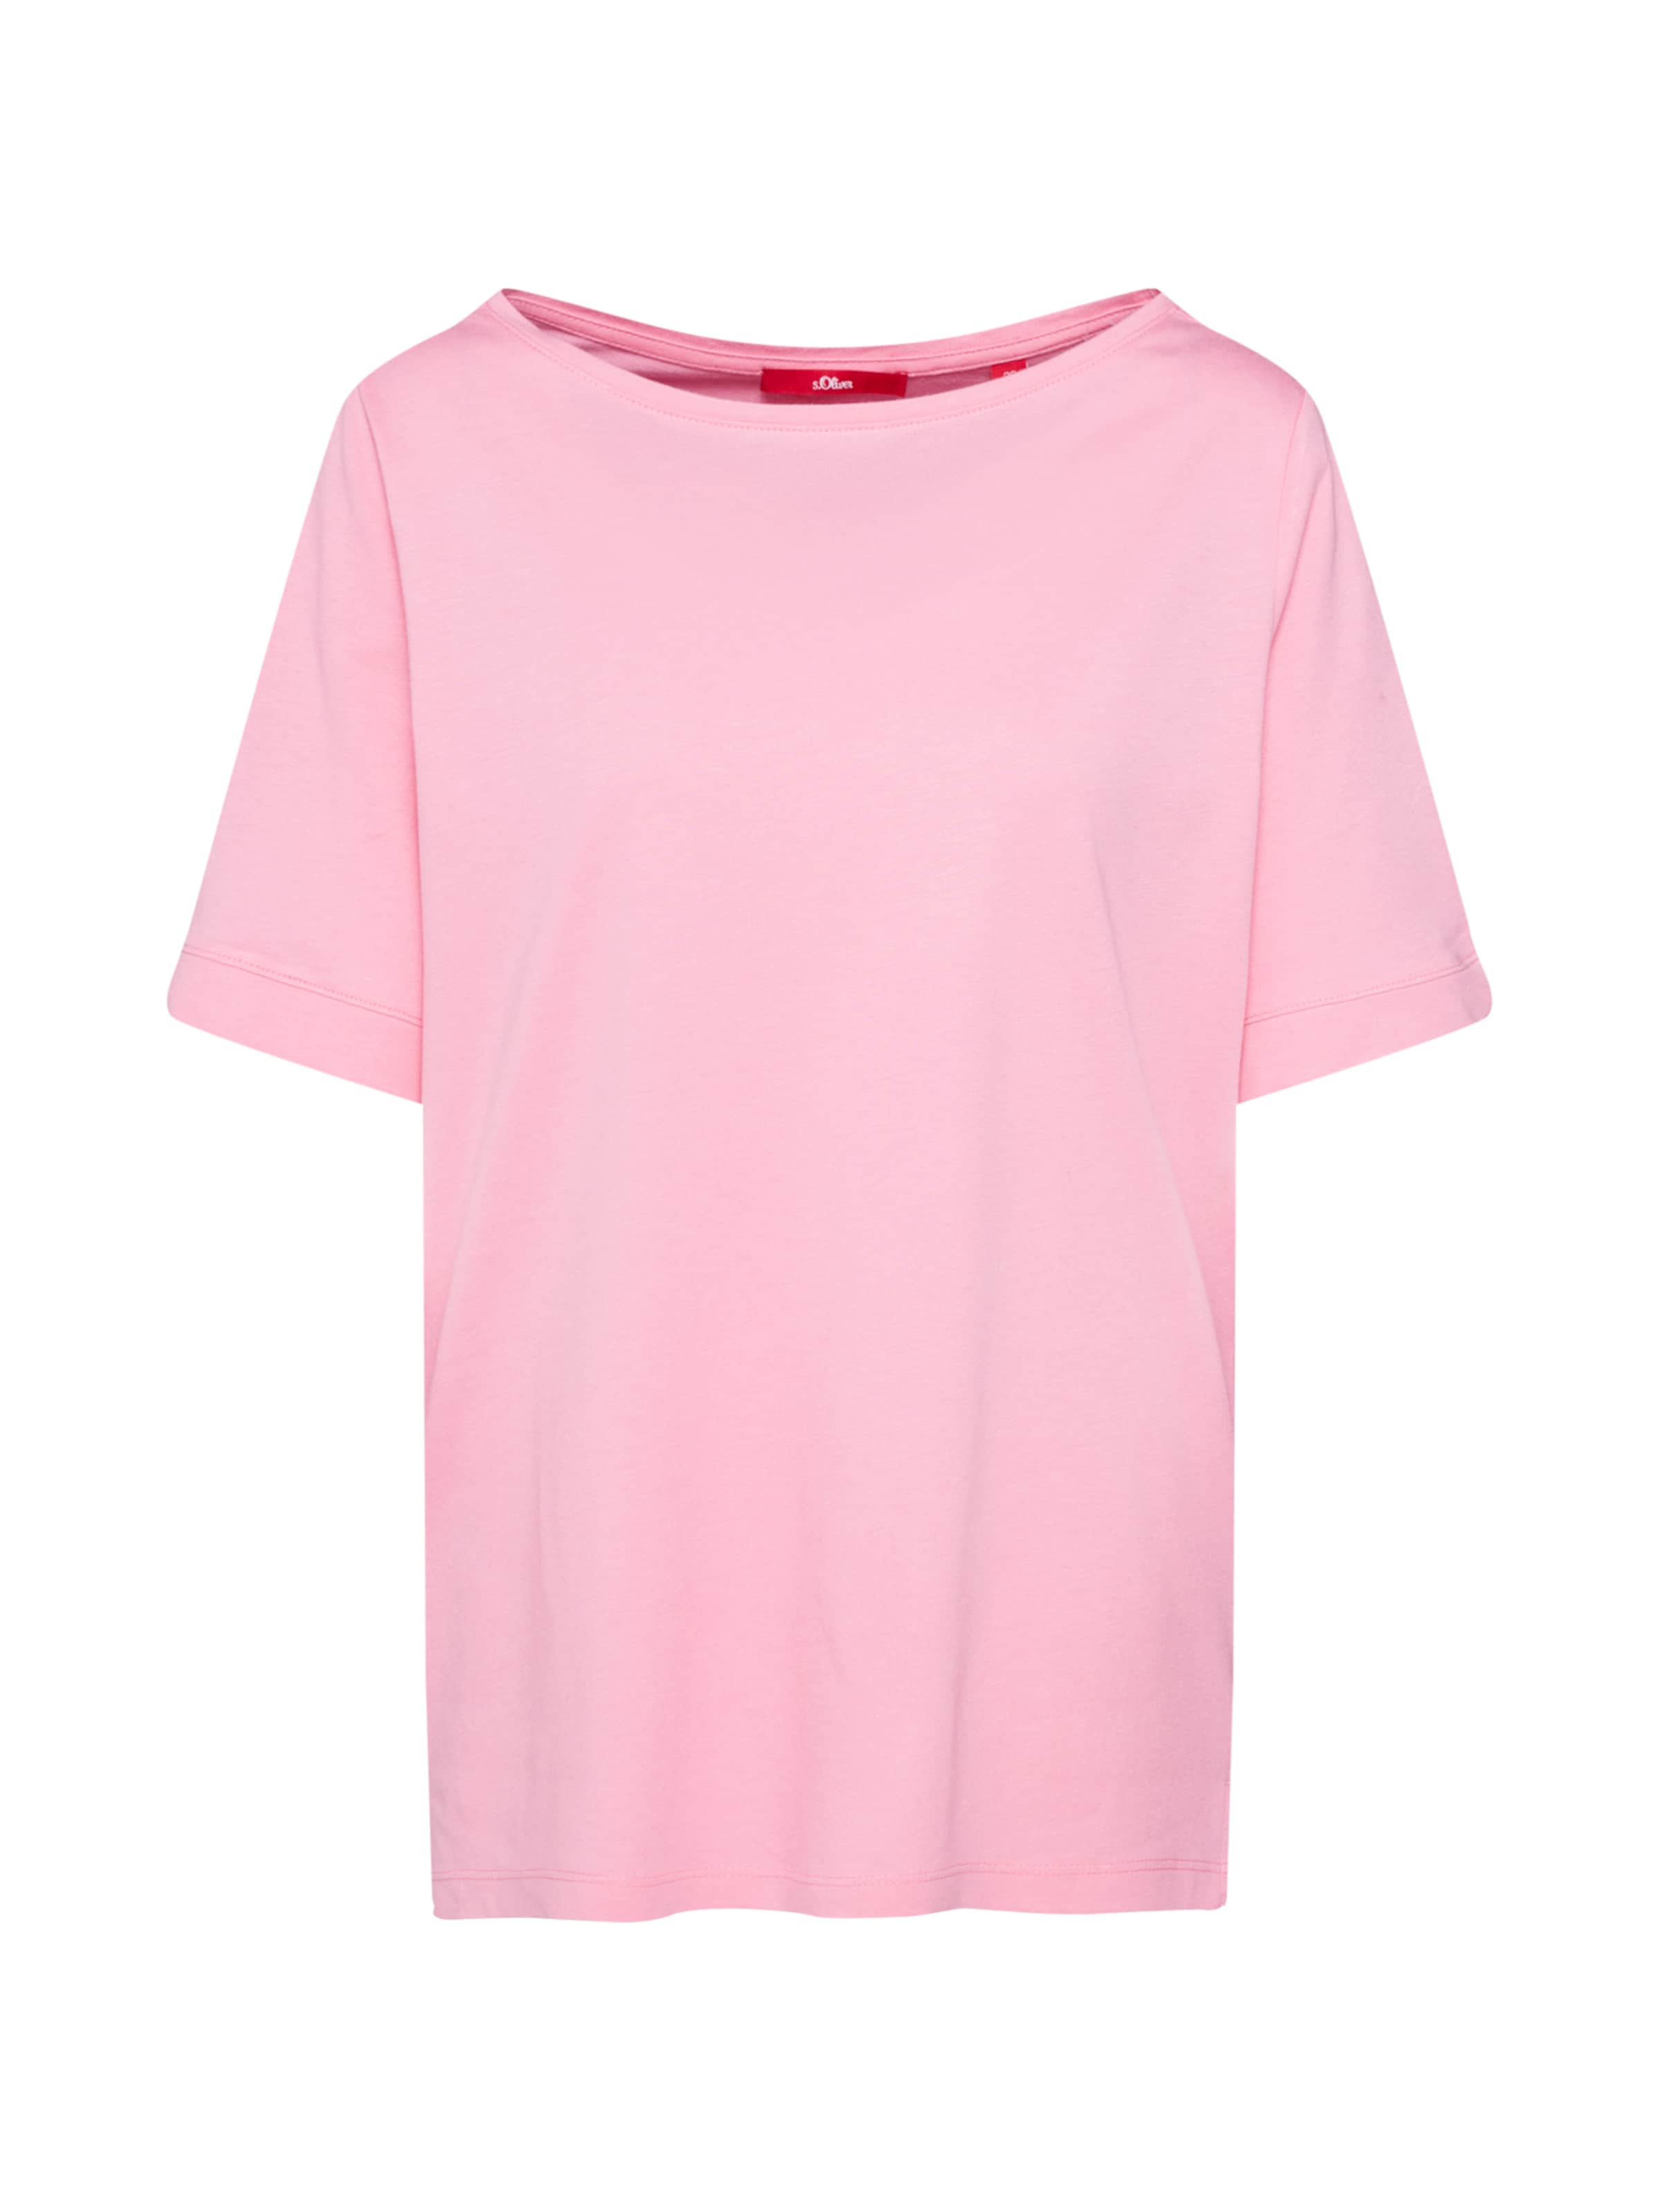 Jerseyshirt Pink oliver S In Label Red 6ygY7bvf